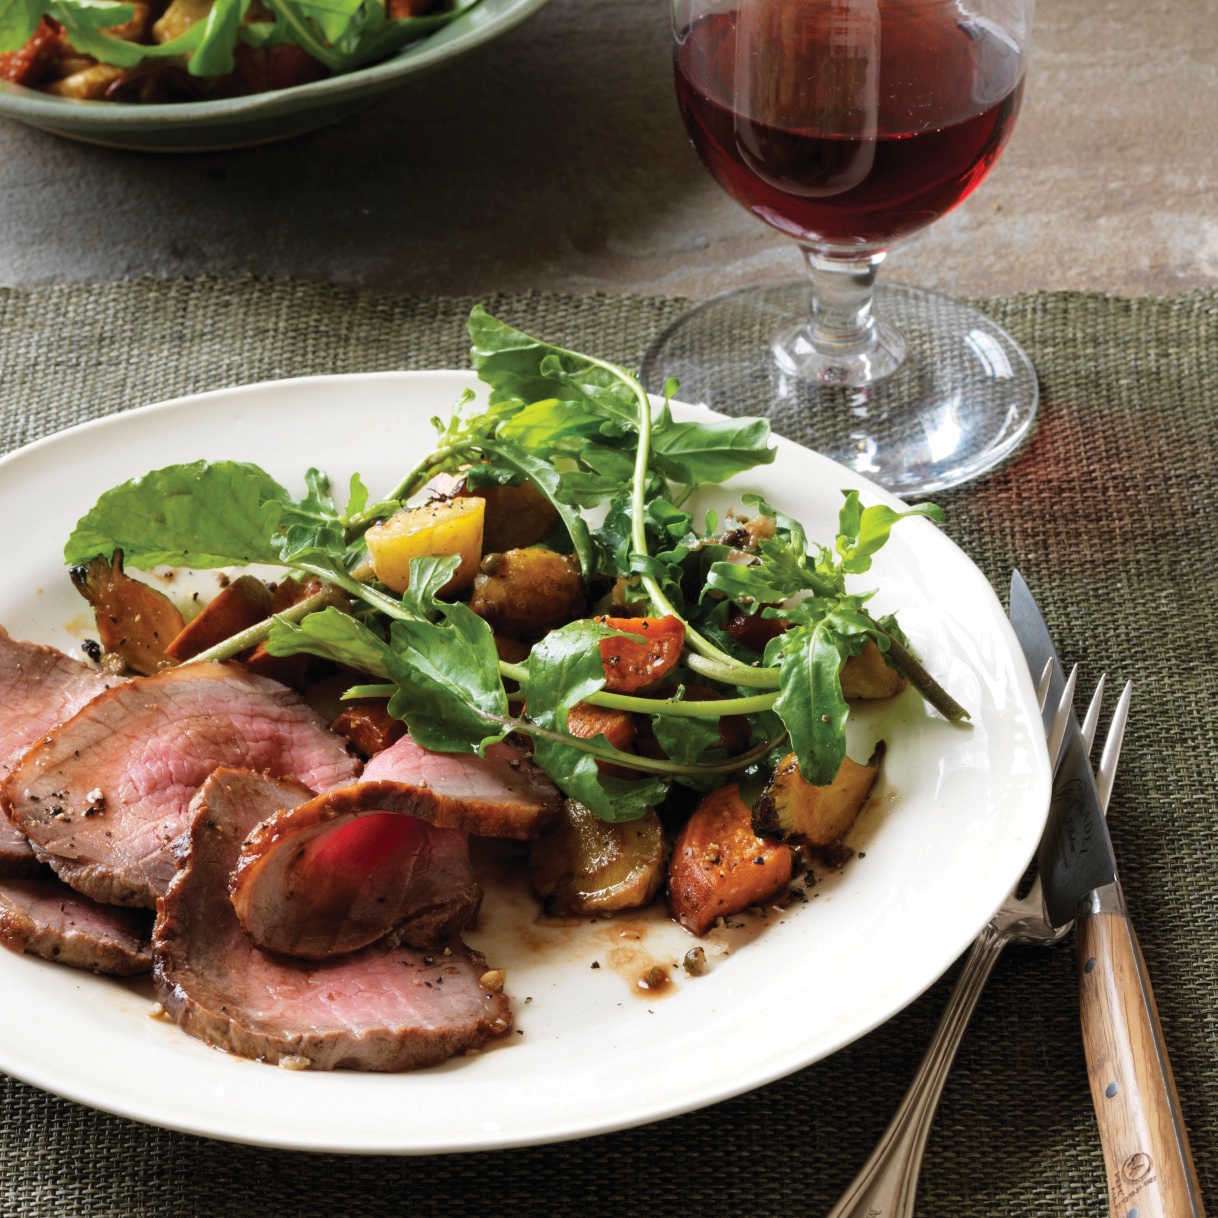 201110-r-roast-beef-with-root-vegetable-and-green-peppercorn-salad.jpg